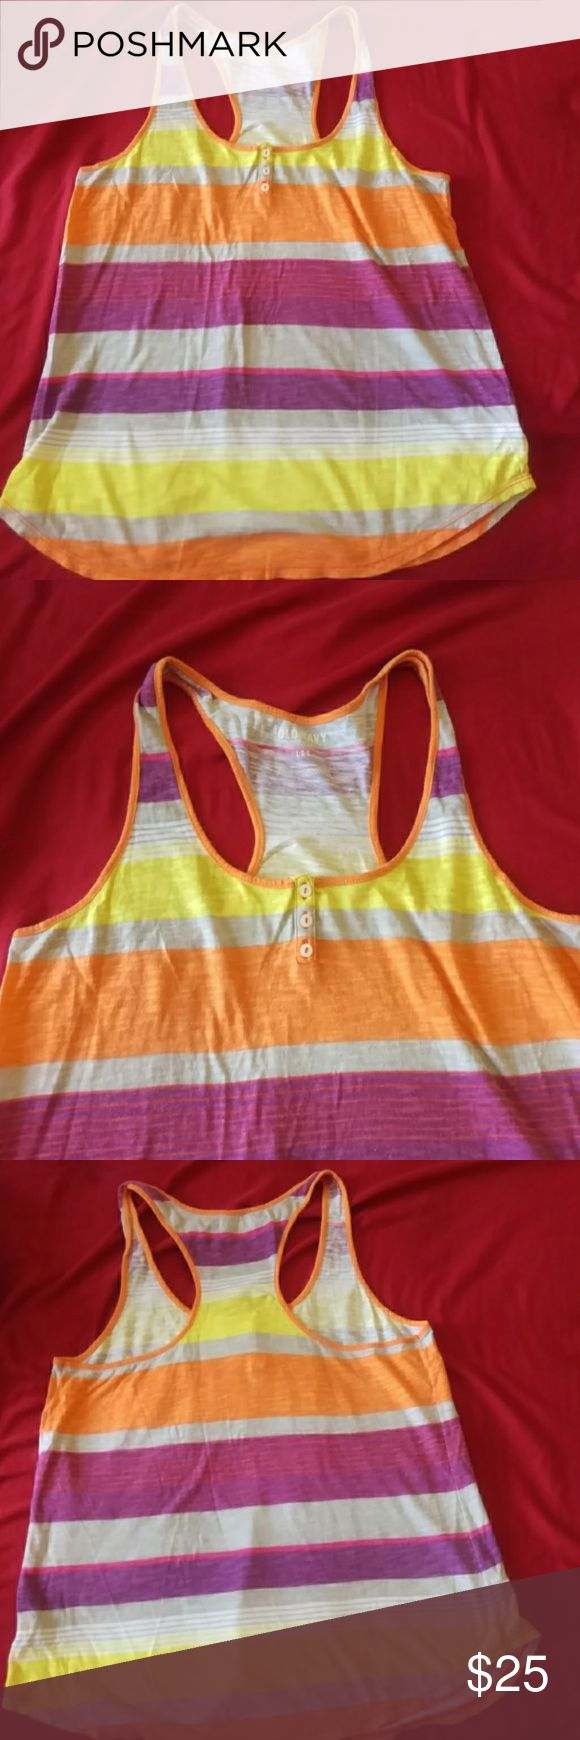 Old navy multicolored razorback tank Old navy multicolored tank top racer back size 10.colors purple,yellow,orange,gray and white Old Navy Tops Tank Tops